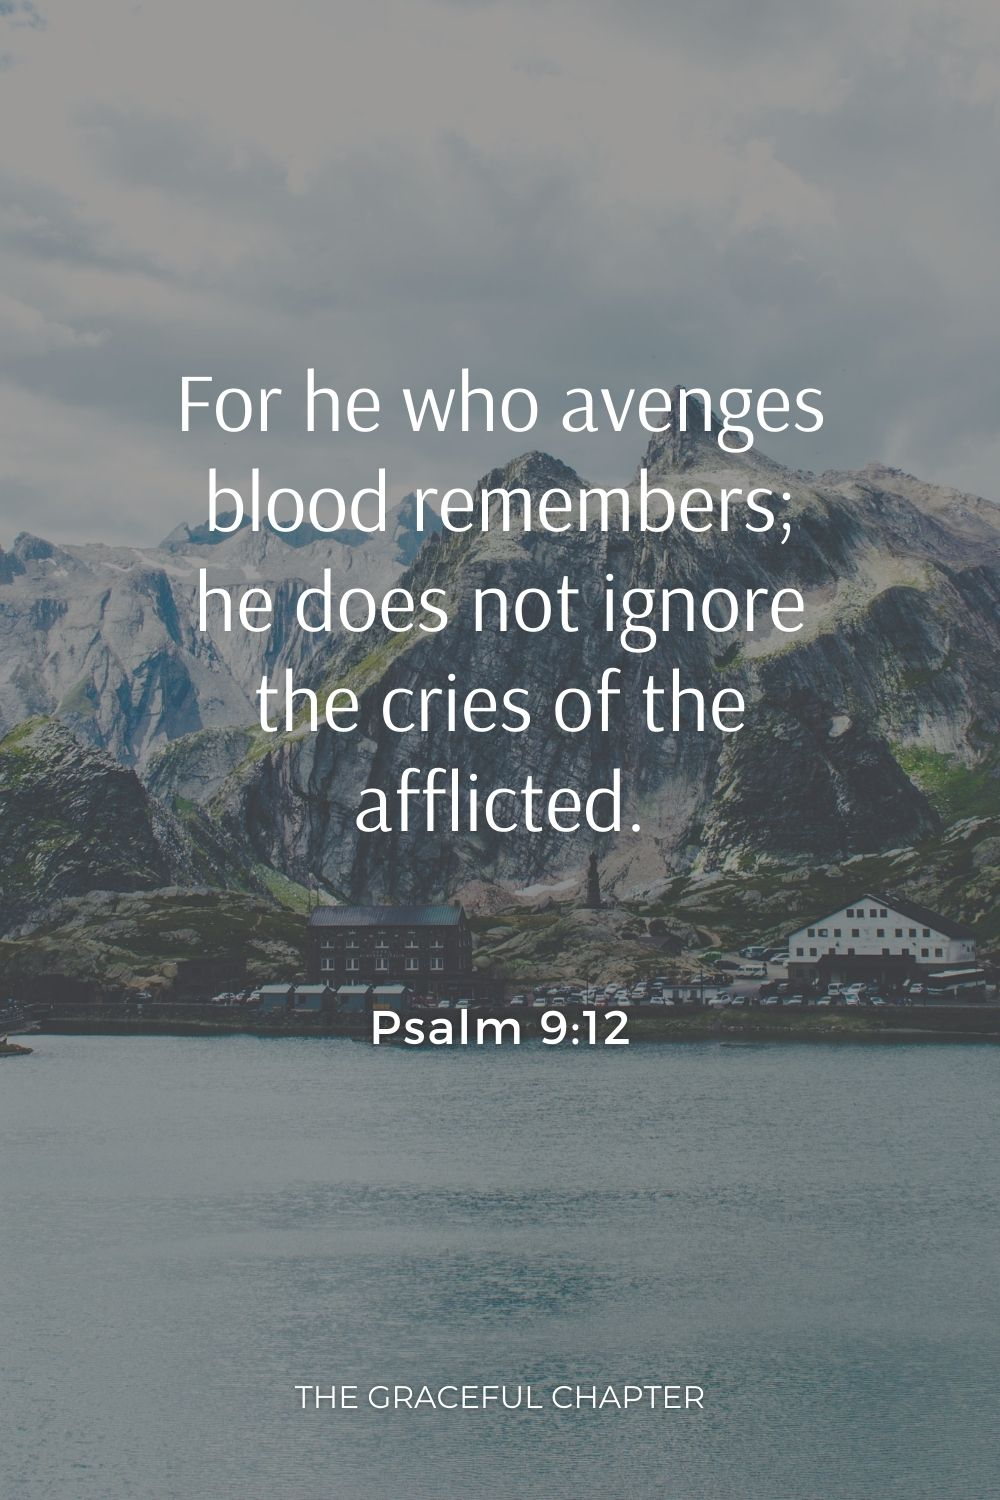 For he who avenges blood remembers; he does not ignore the cries of the afflicted. Psalm 9:12